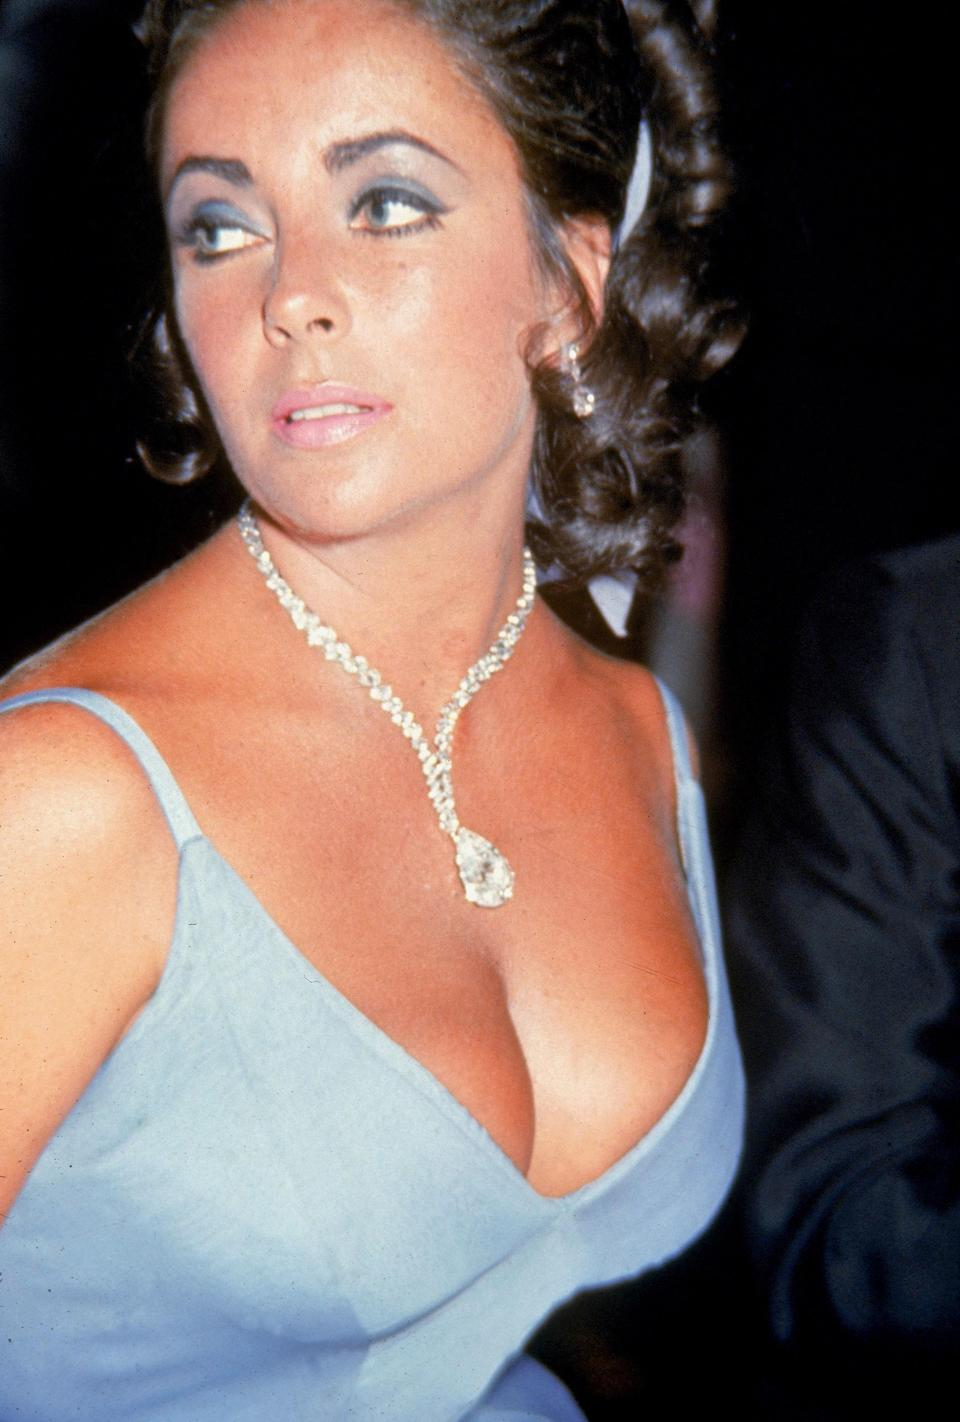 No discussion of iconic Hollywood jewelry would be complete without a nod to Elizabeth Taylor. The cinema icon's collection of baubles was expansive, but her most impressive piece was the Taylor-Burton diamond, a 68-carat stone purchased by Taylor and then husband Richard Burton in 1969. Formerly a ring, the oversized diamond was refashioned into a dazzling necklace that the actress wore to the 42nd Academy Awards.